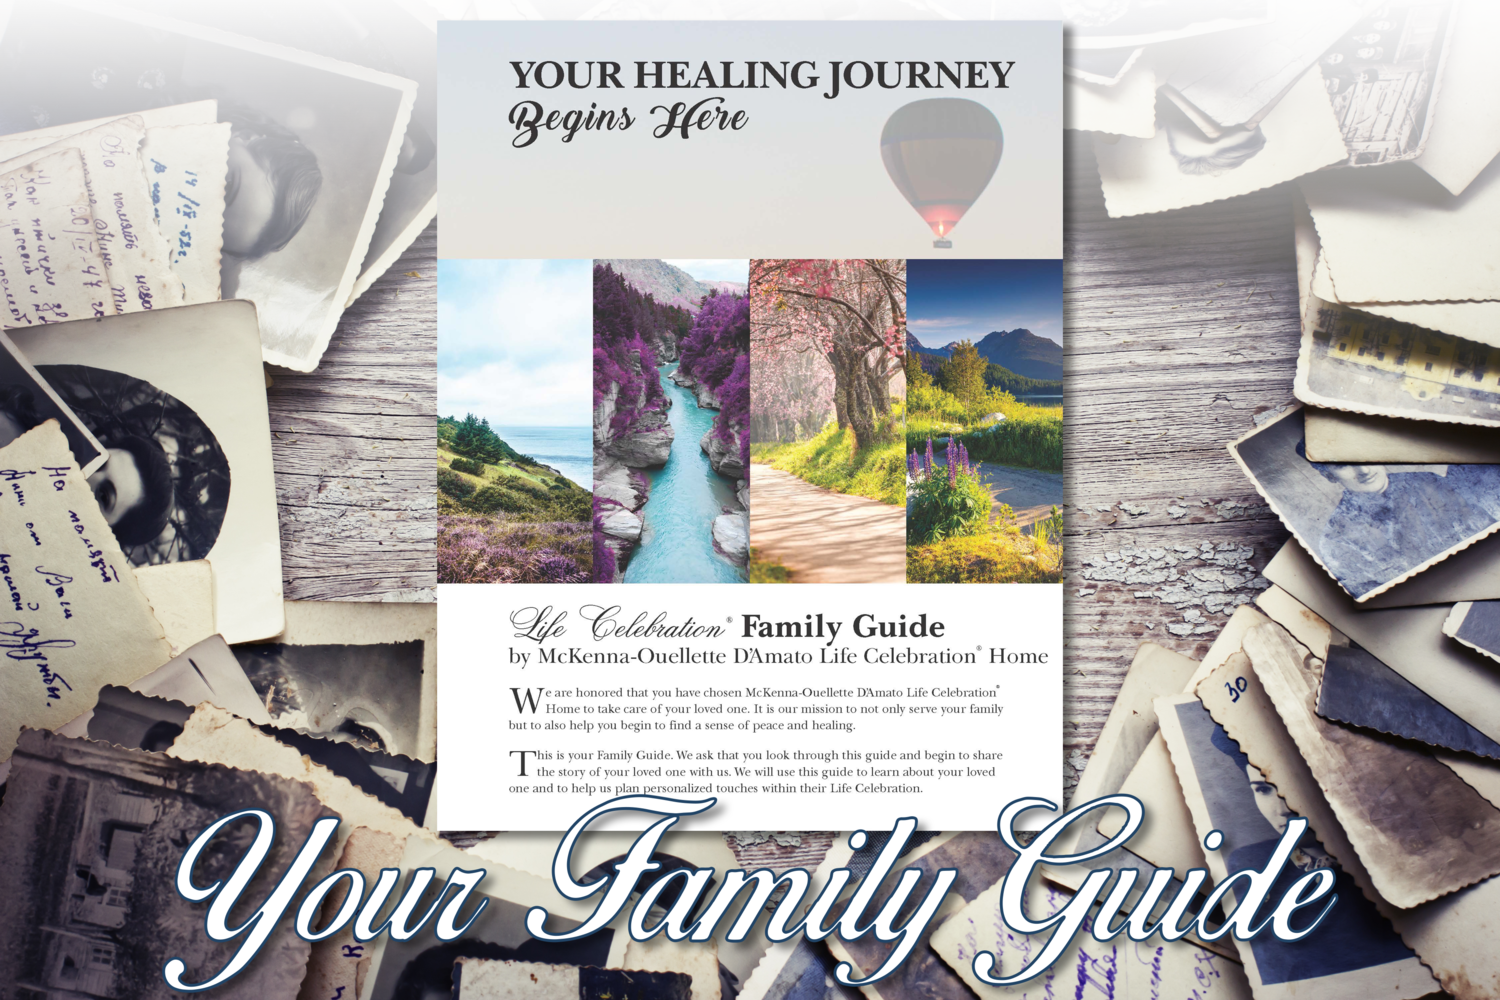 McKenna-Ouellette Family Guide